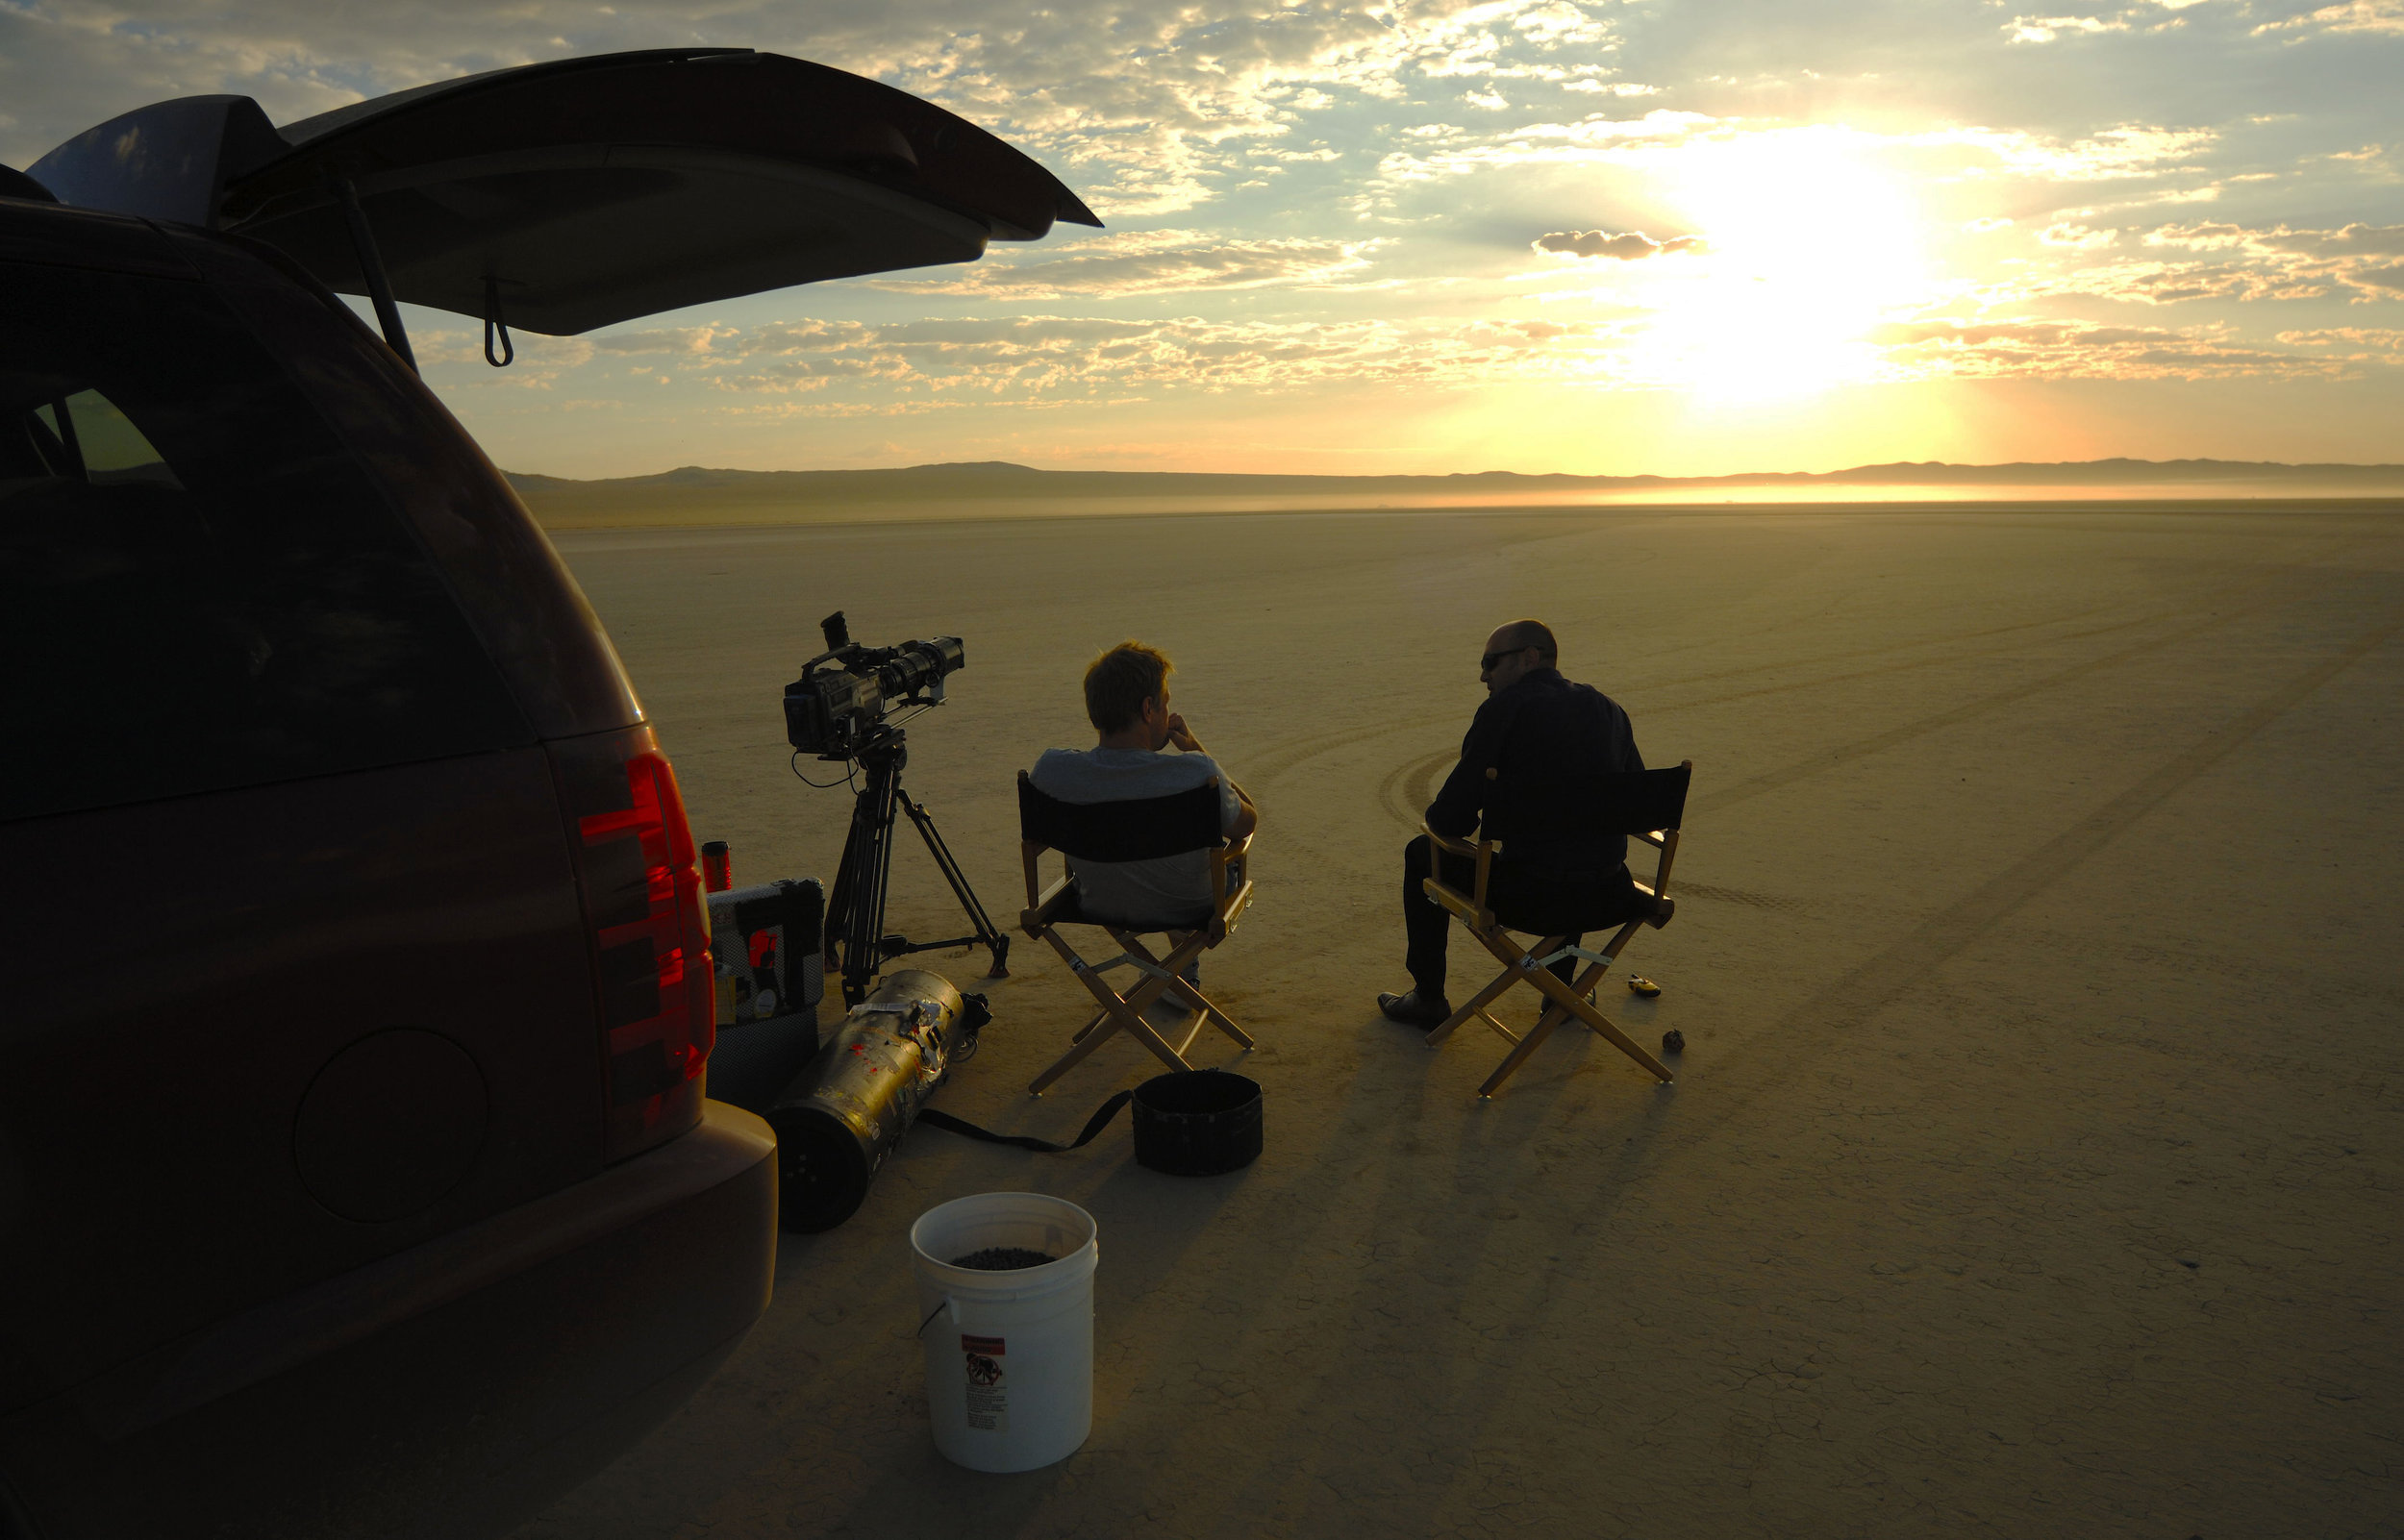 On set in the Mojave Desert in California for the BBC series Atom in 2007.